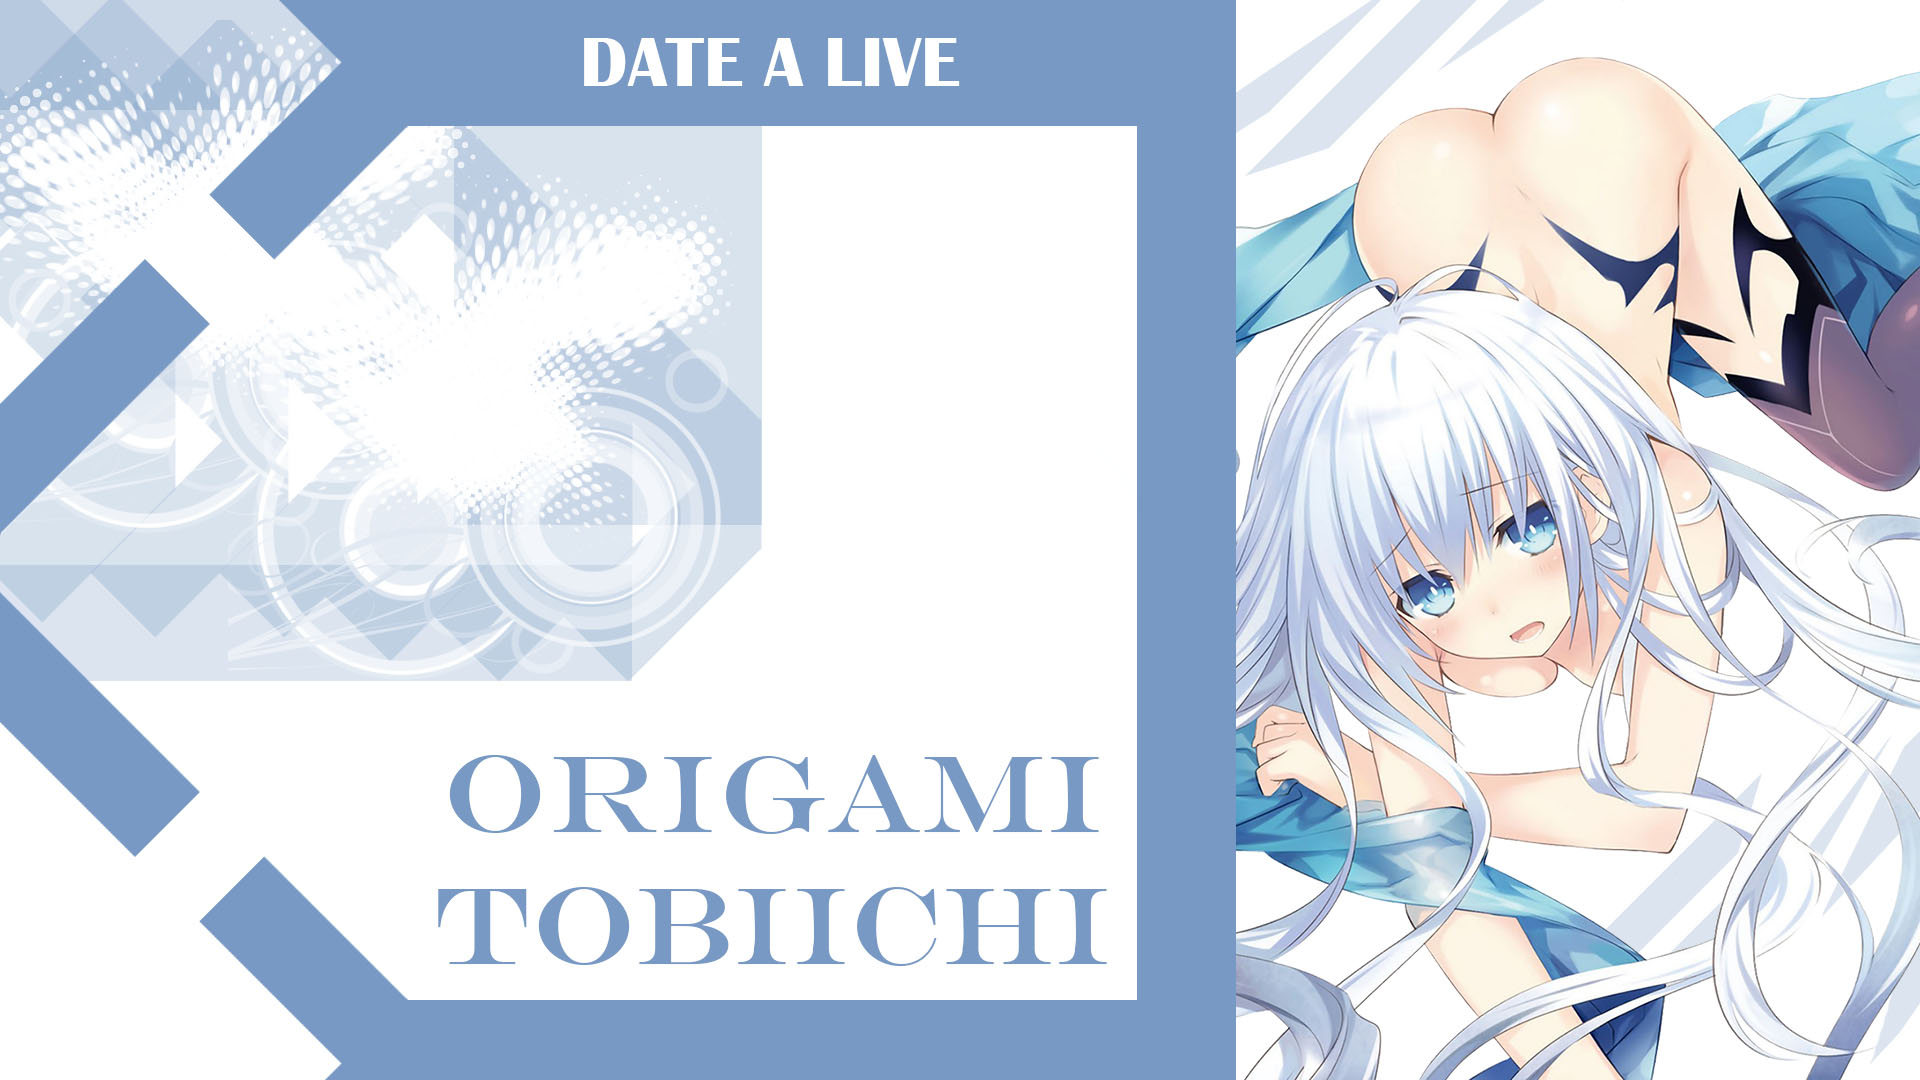 Steam Workshop Date A Live Tobiichi Origami Inverse Form 鳶一